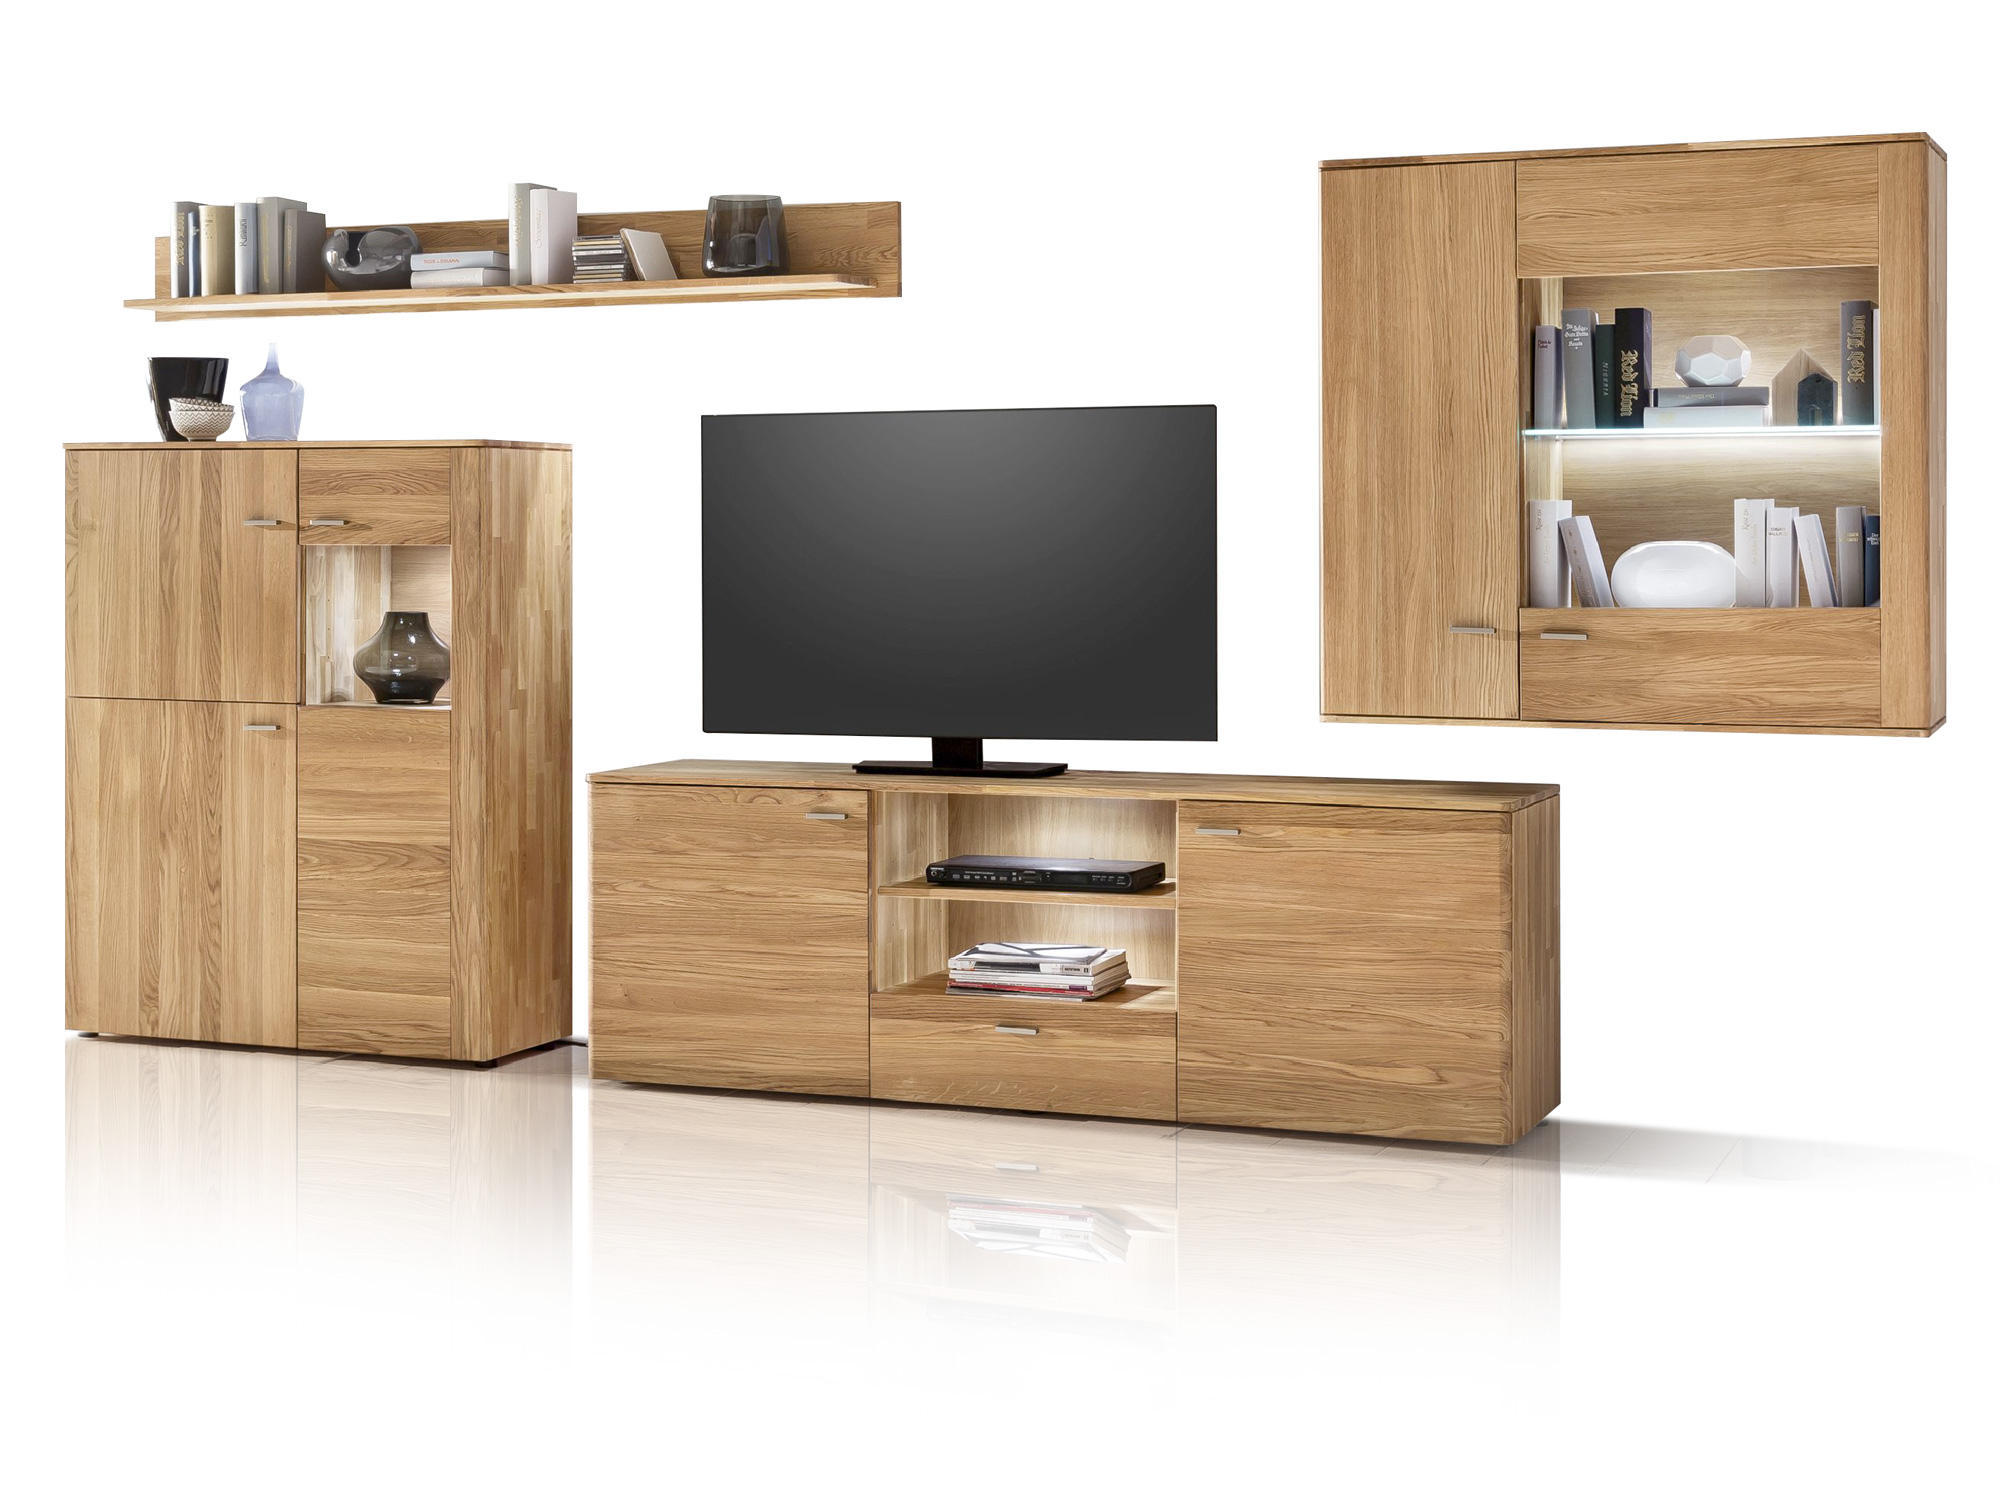 kanton komplette wohnwand massivholz kernbuche ohne beleuchtung. Black Bedroom Furniture Sets. Home Design Ideas